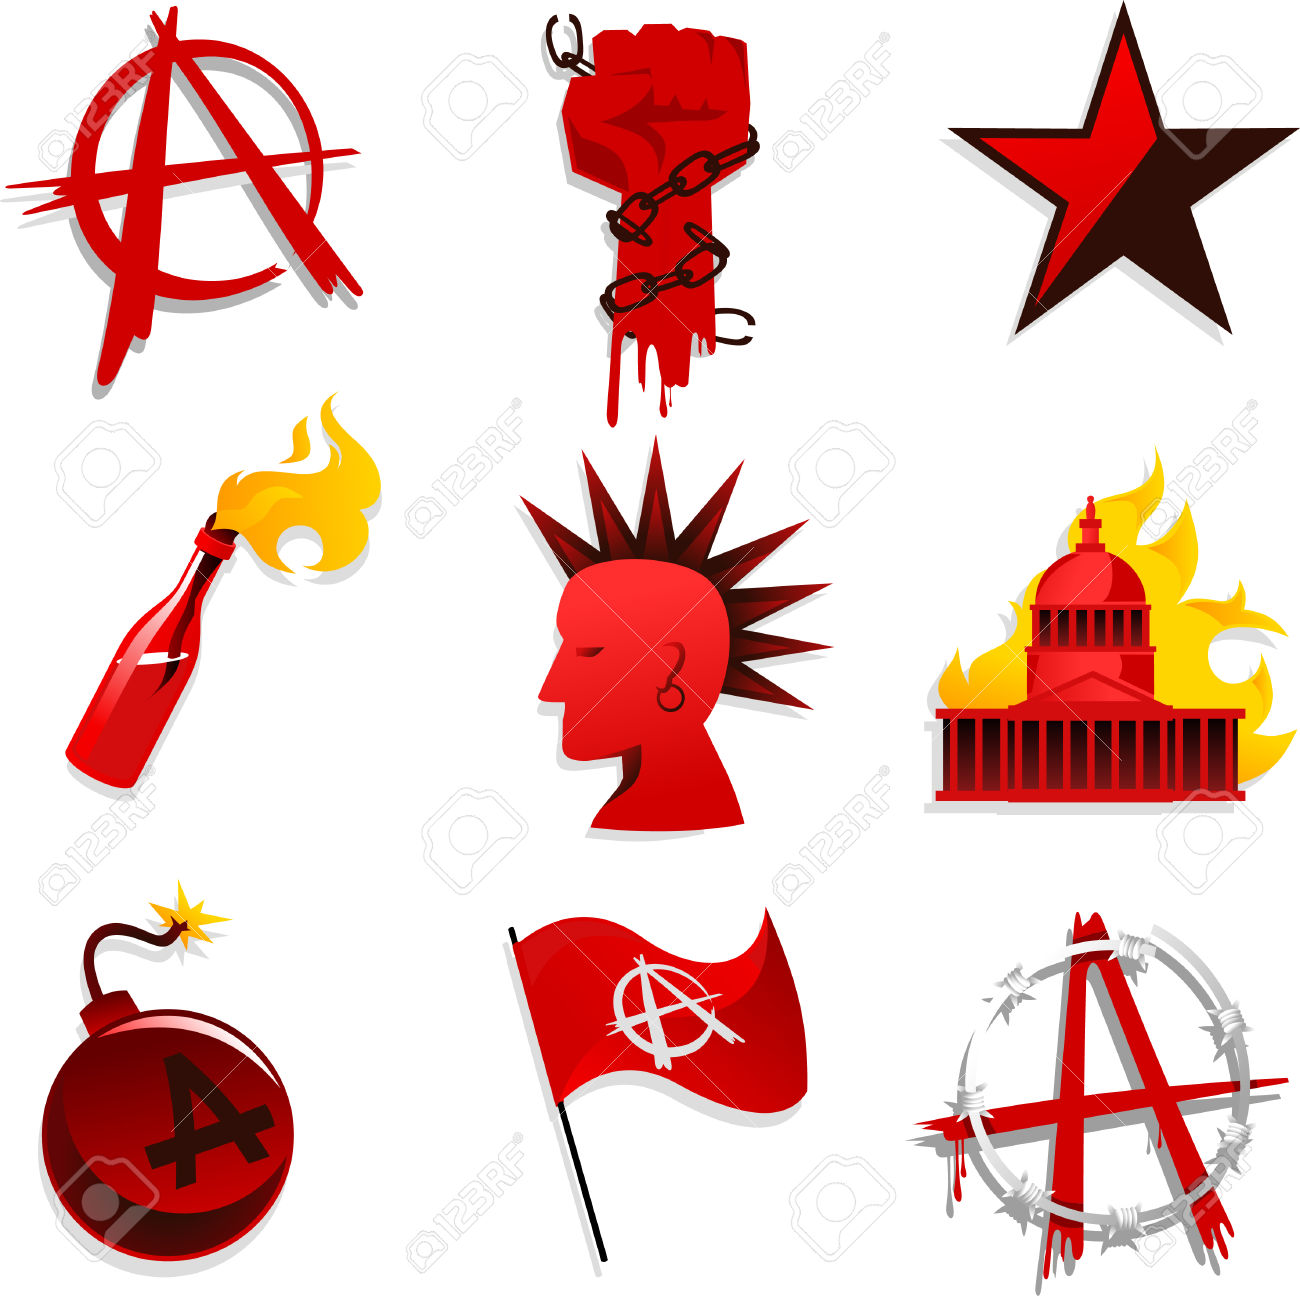 Anarchy Set Red Black Star Chain Hand And Bomb Flag Vector.